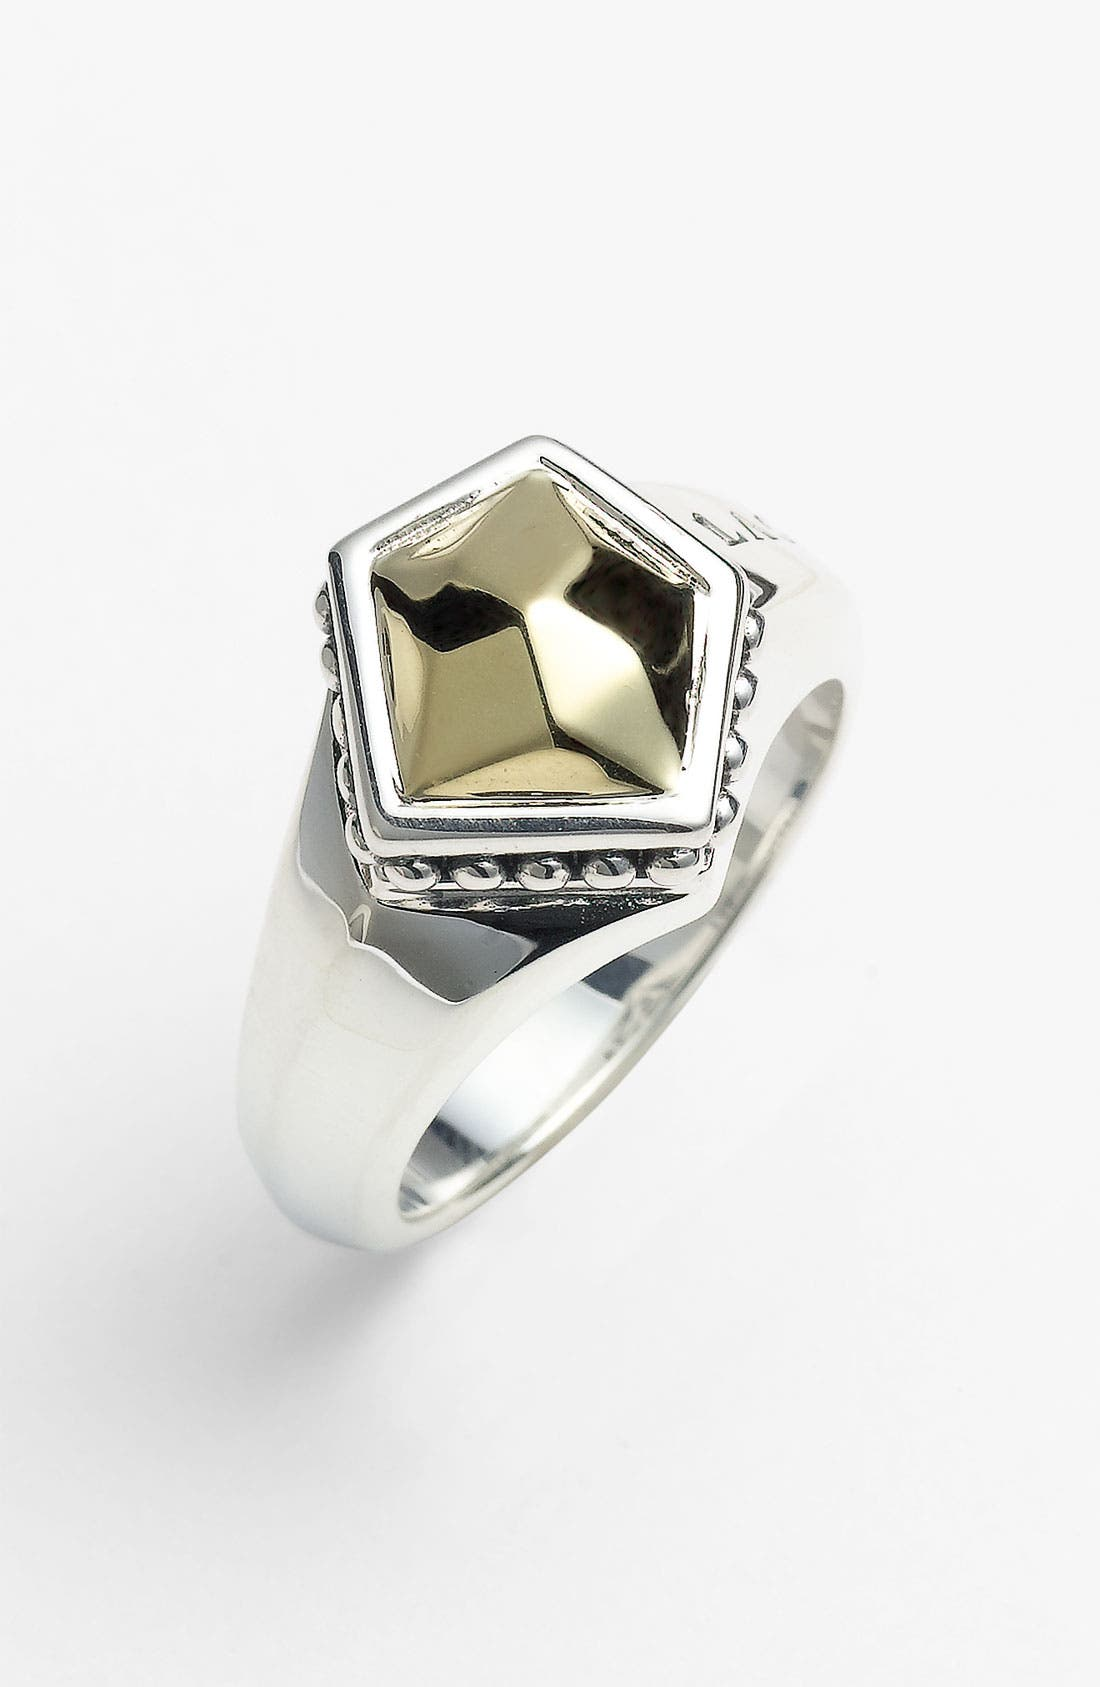 Main Image - LAGOS 'Rocks' Small Angled Two Tone Ring